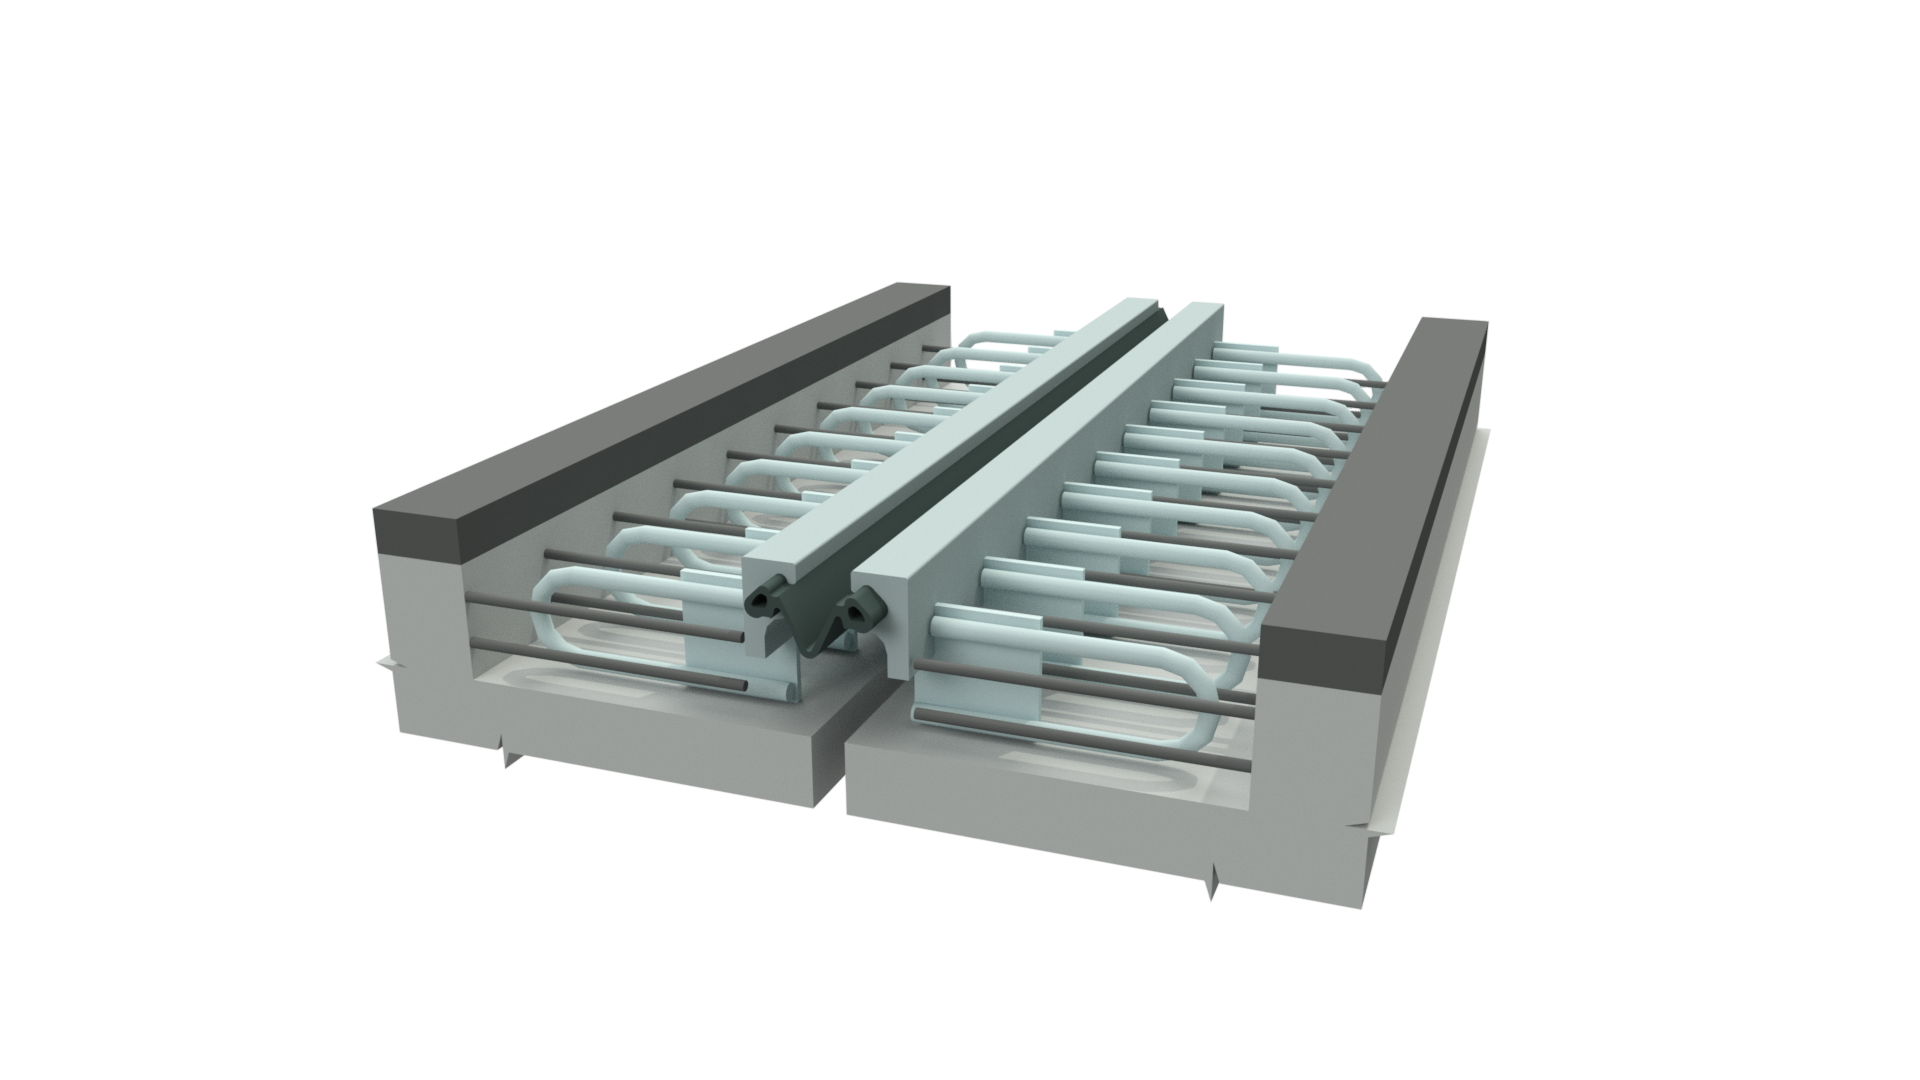 Vietnam Reinforced and Durable Strip Seal Expansion Joint Movement Joint for Construction